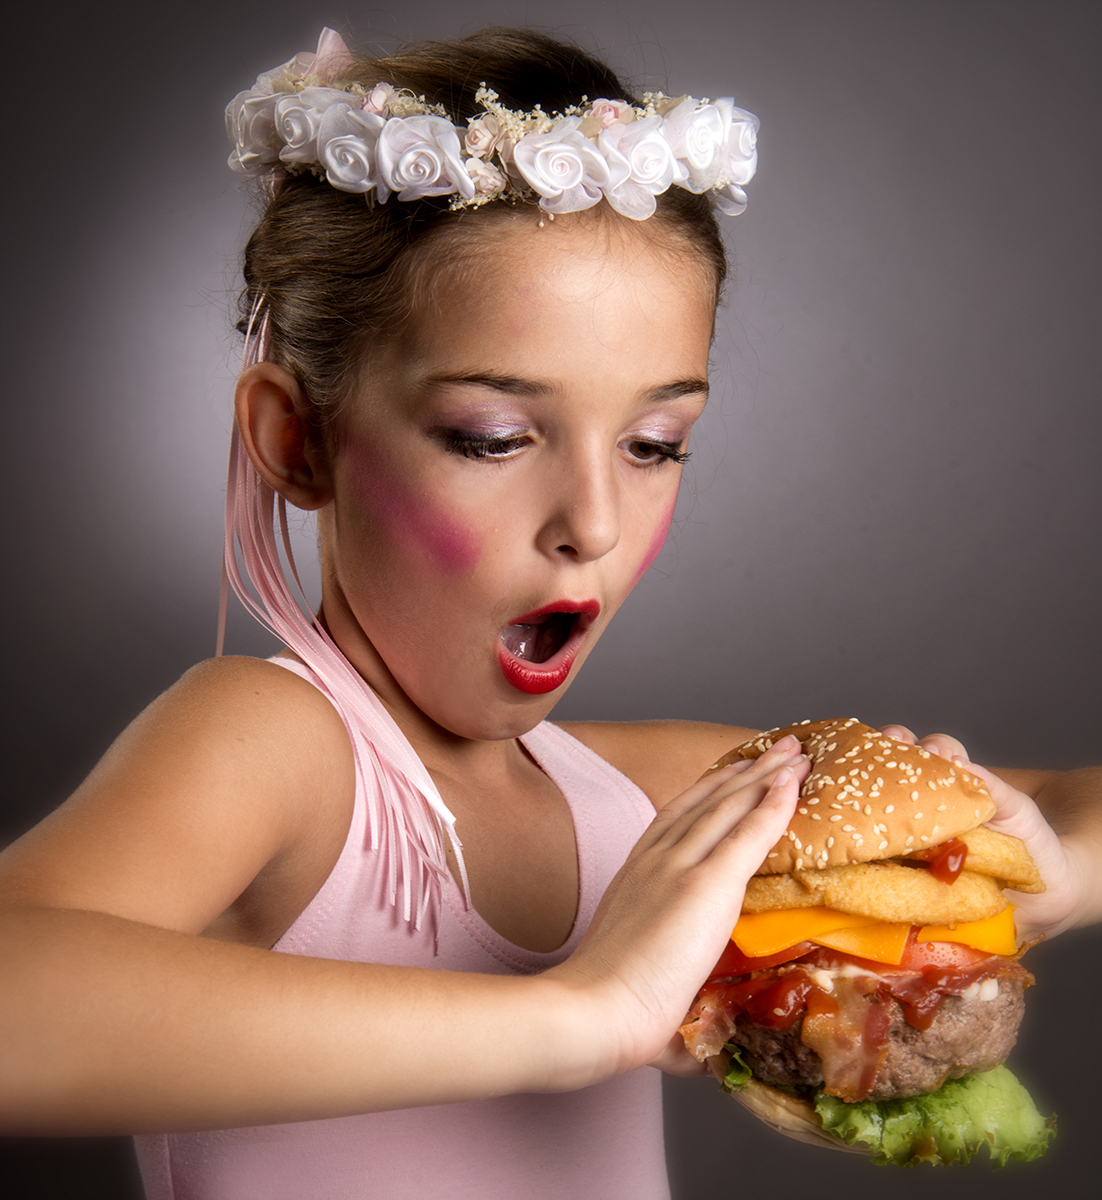 Ballarina-eating-a-burger-Carl-Kravats-Photography